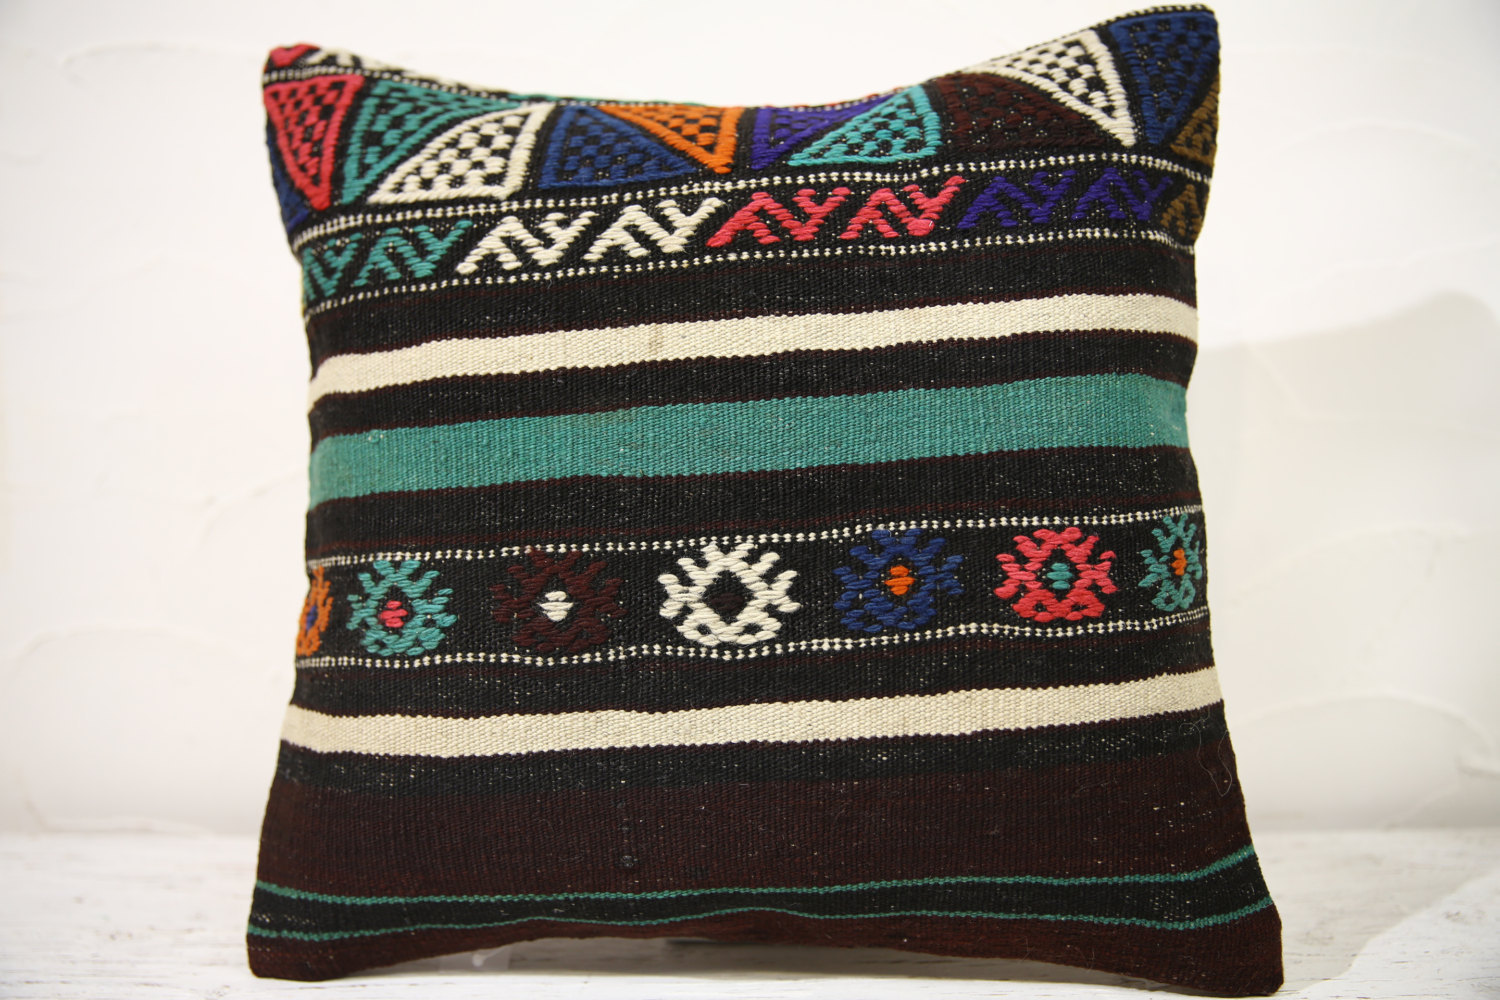 Kilim Pillows | 16x16 | Decorative Pillows | 781 | Accent Pillows turkish pillow